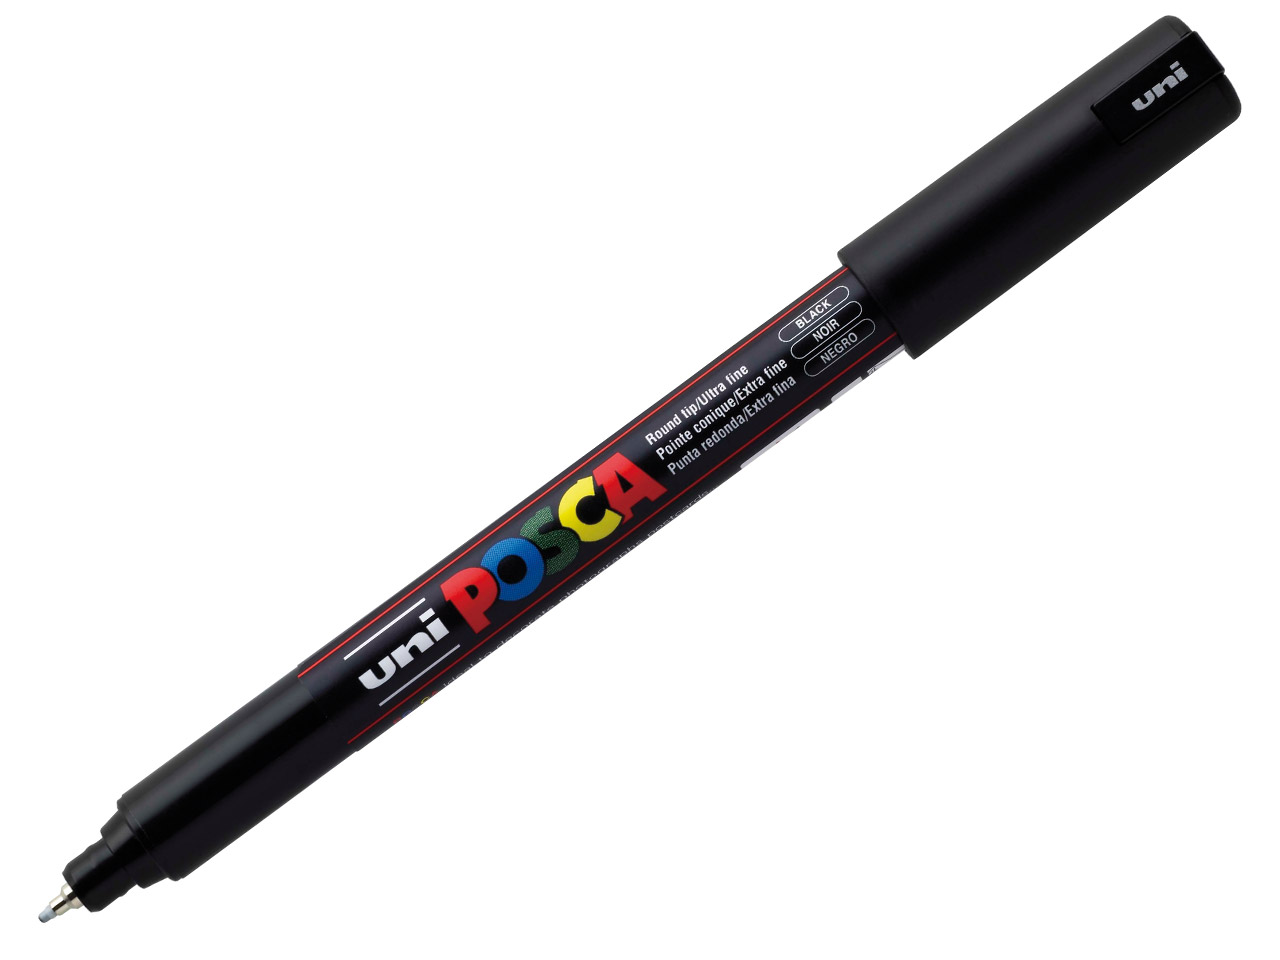 Posca Multi-surface Paint Marker In Black, 0.7mm Ultrafine Tip